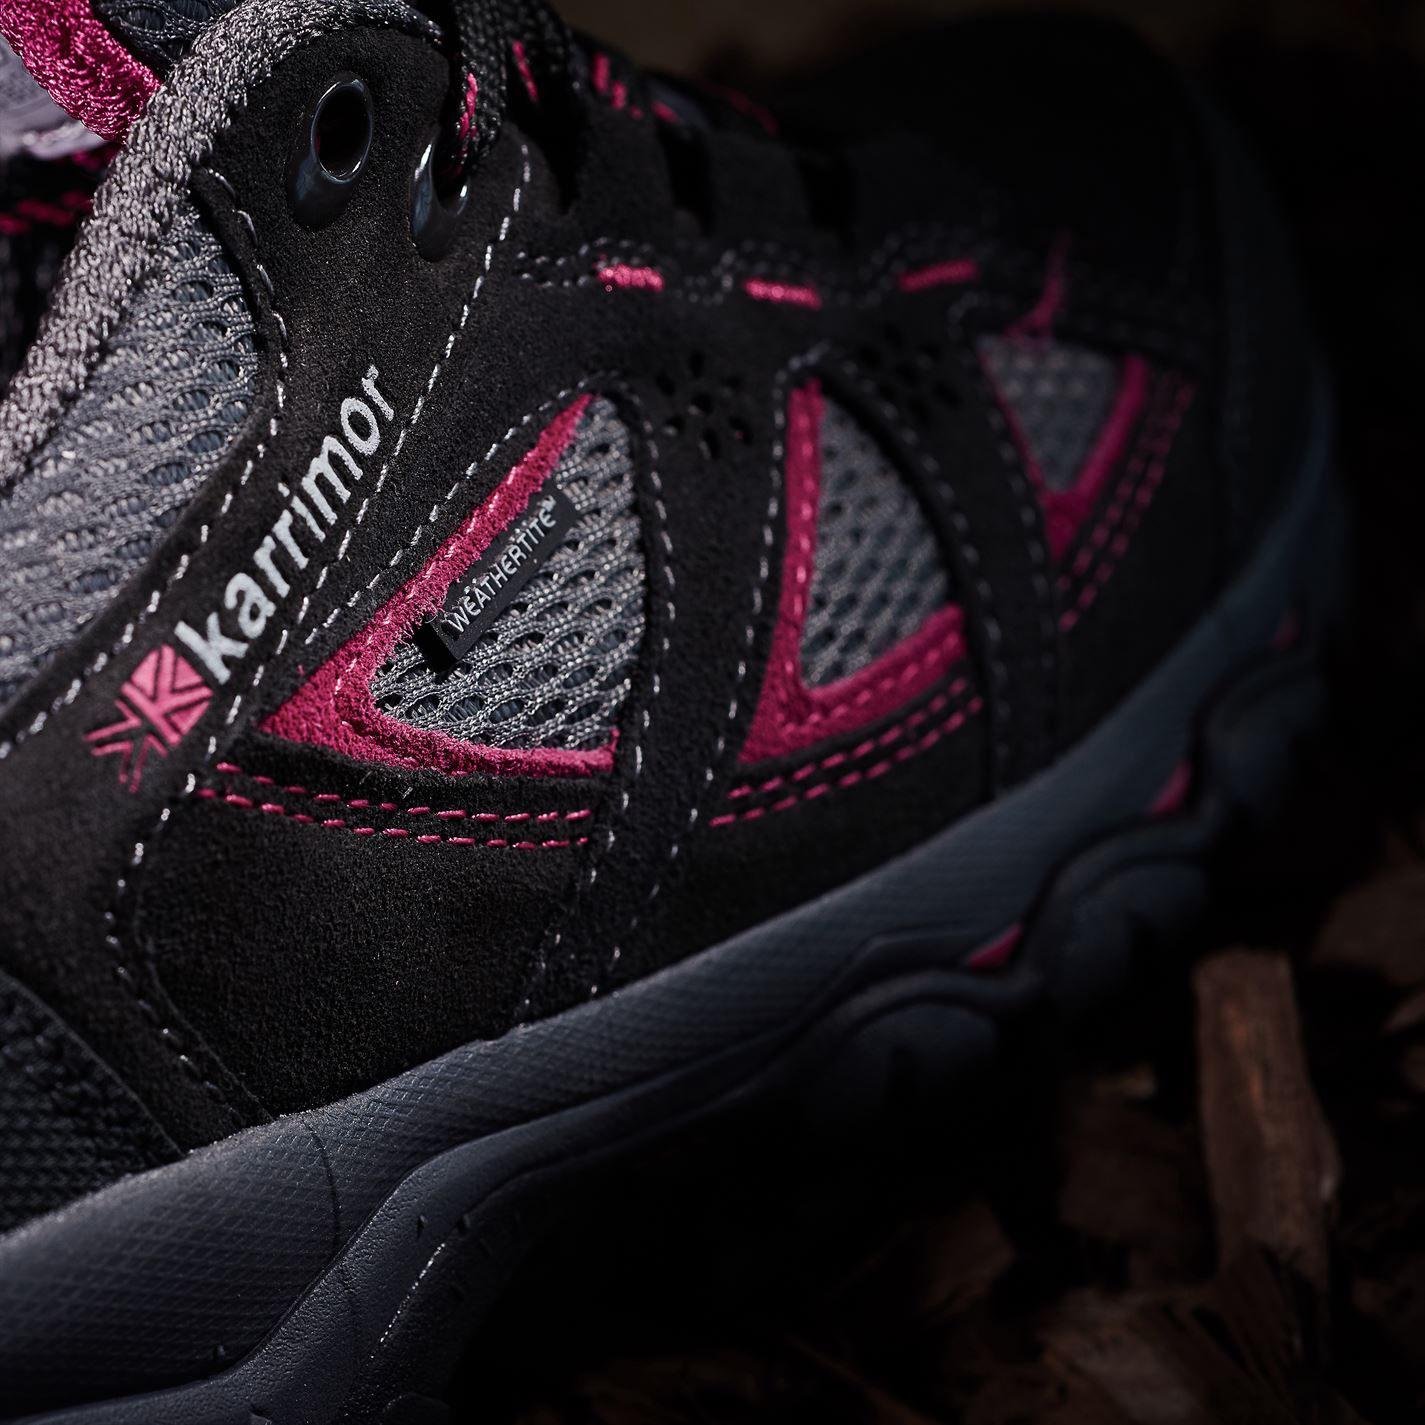 Karrimor-Womens-Mount-Low-Ladies-Walking-Shoes-Waterproof-Laced-Hiking-Trainers thumbnail 14